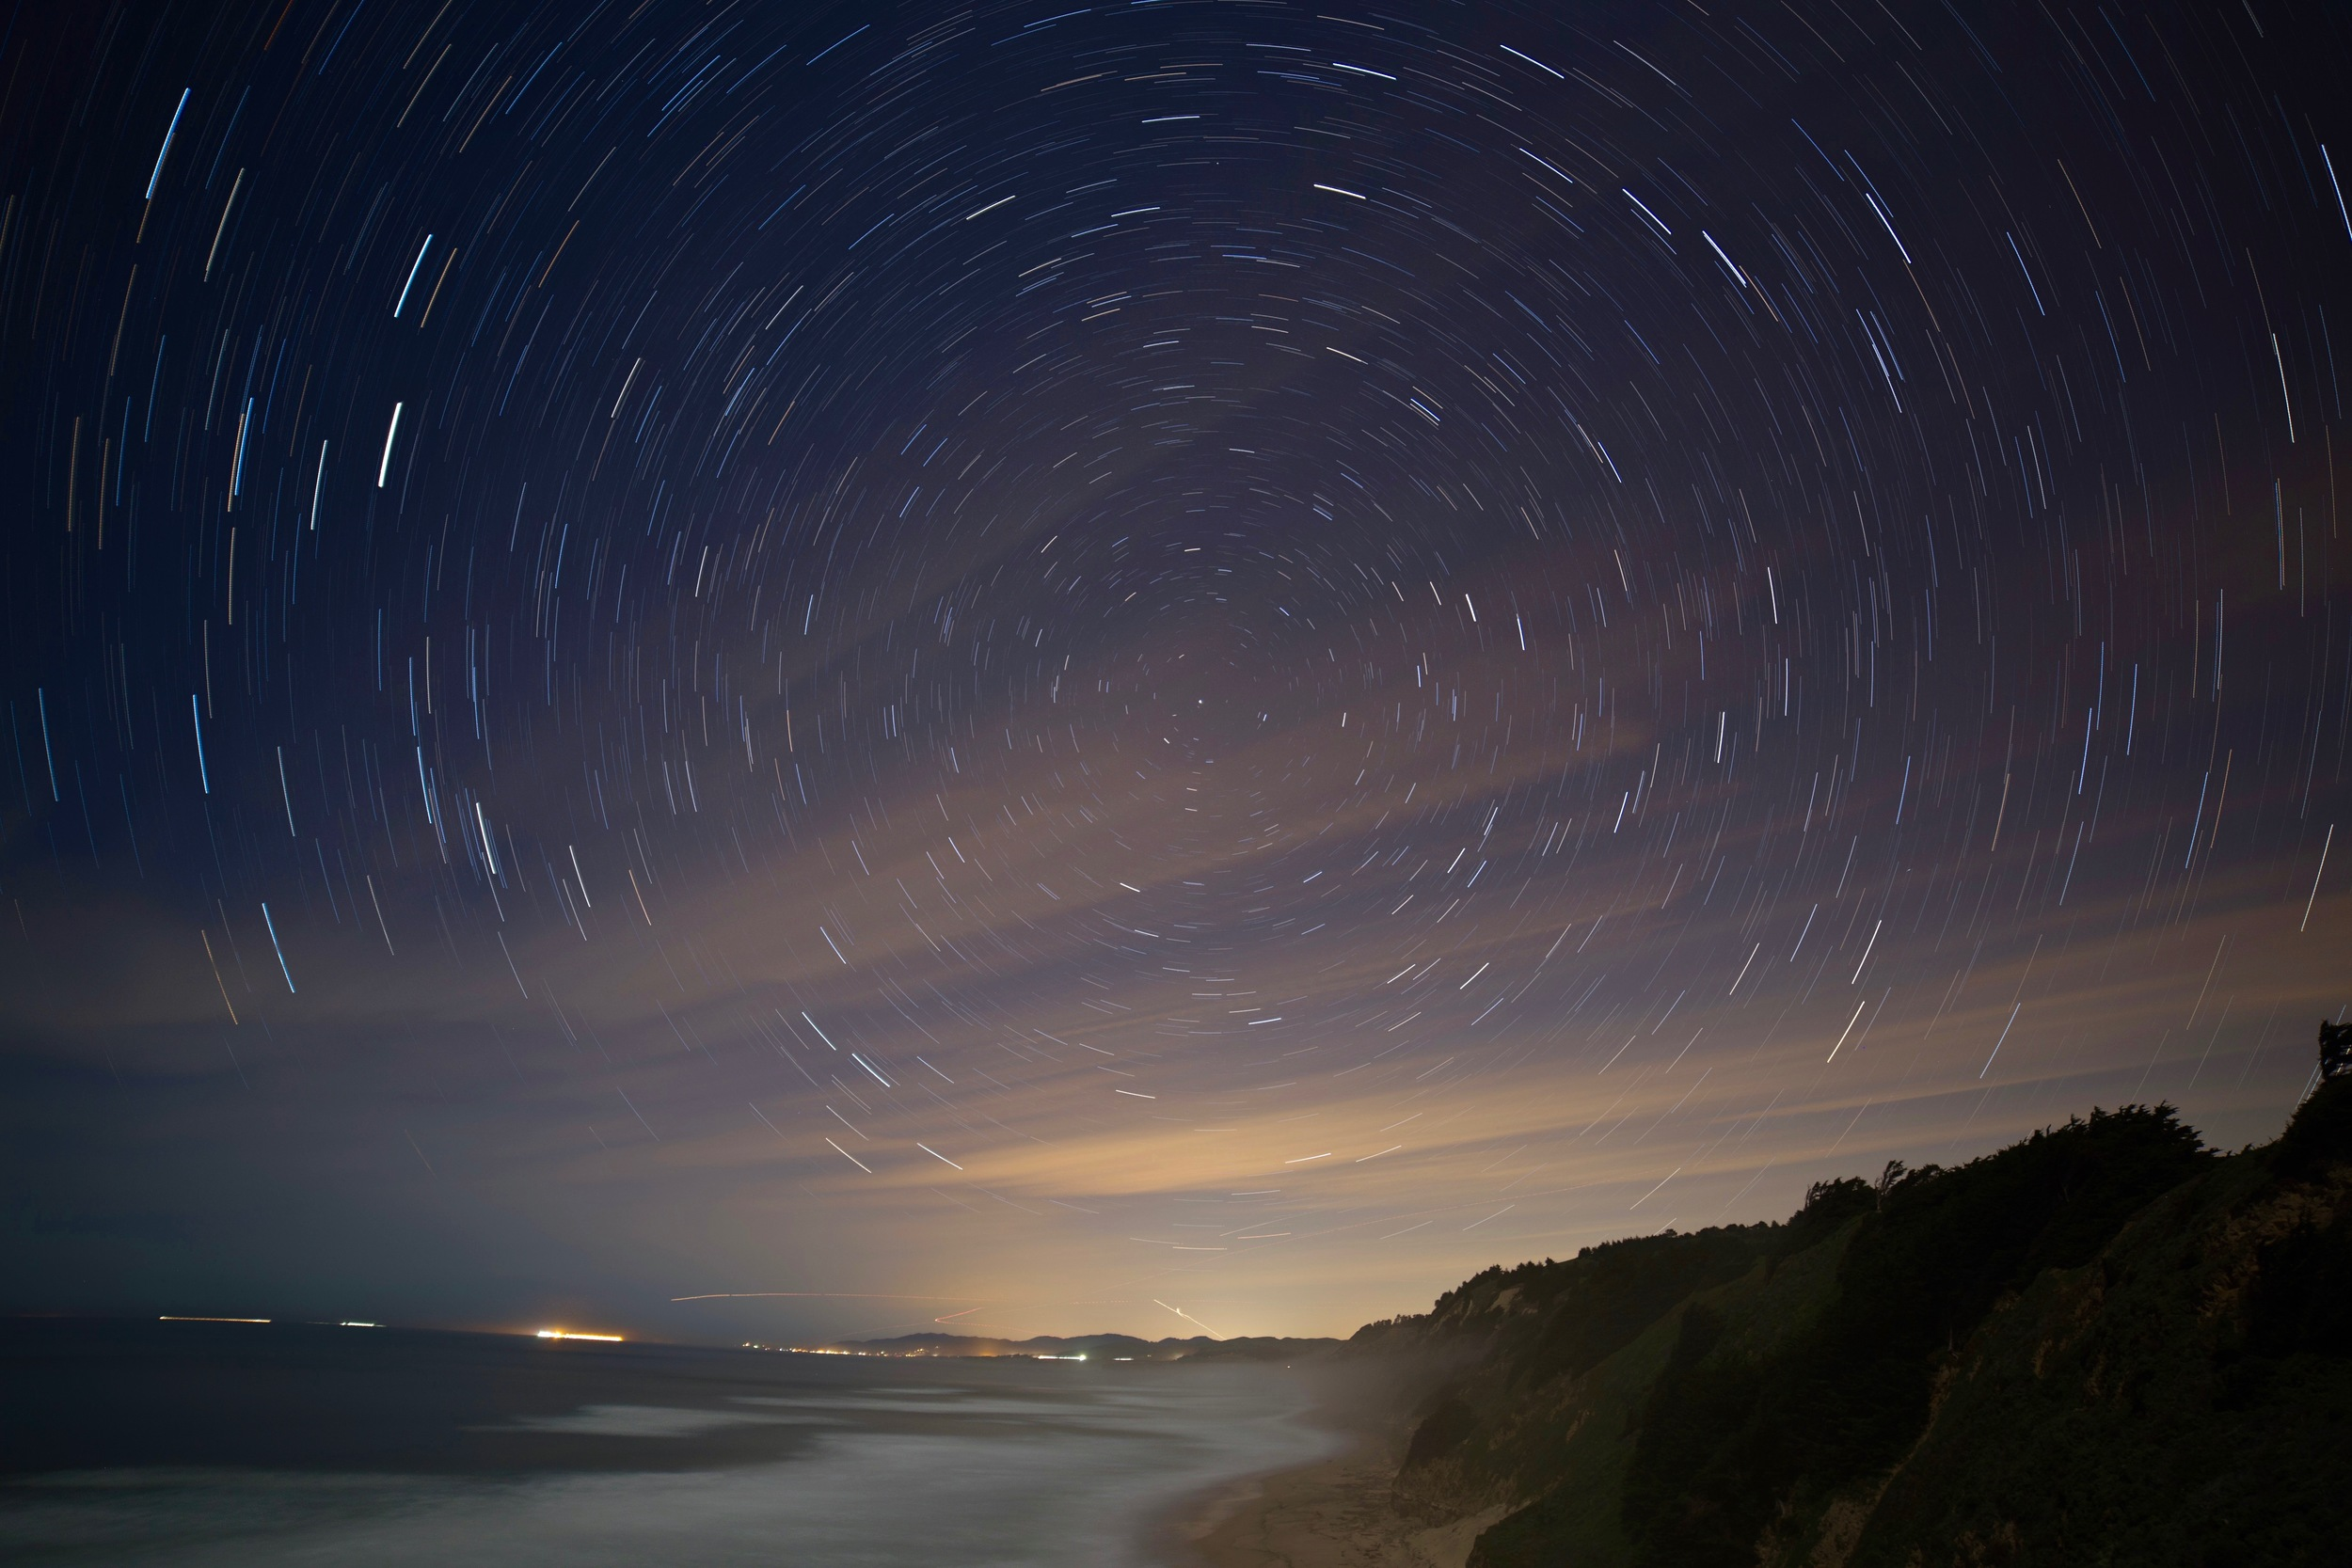 So I turned the camera north and got star trails. The lights are Half Moon Bay.